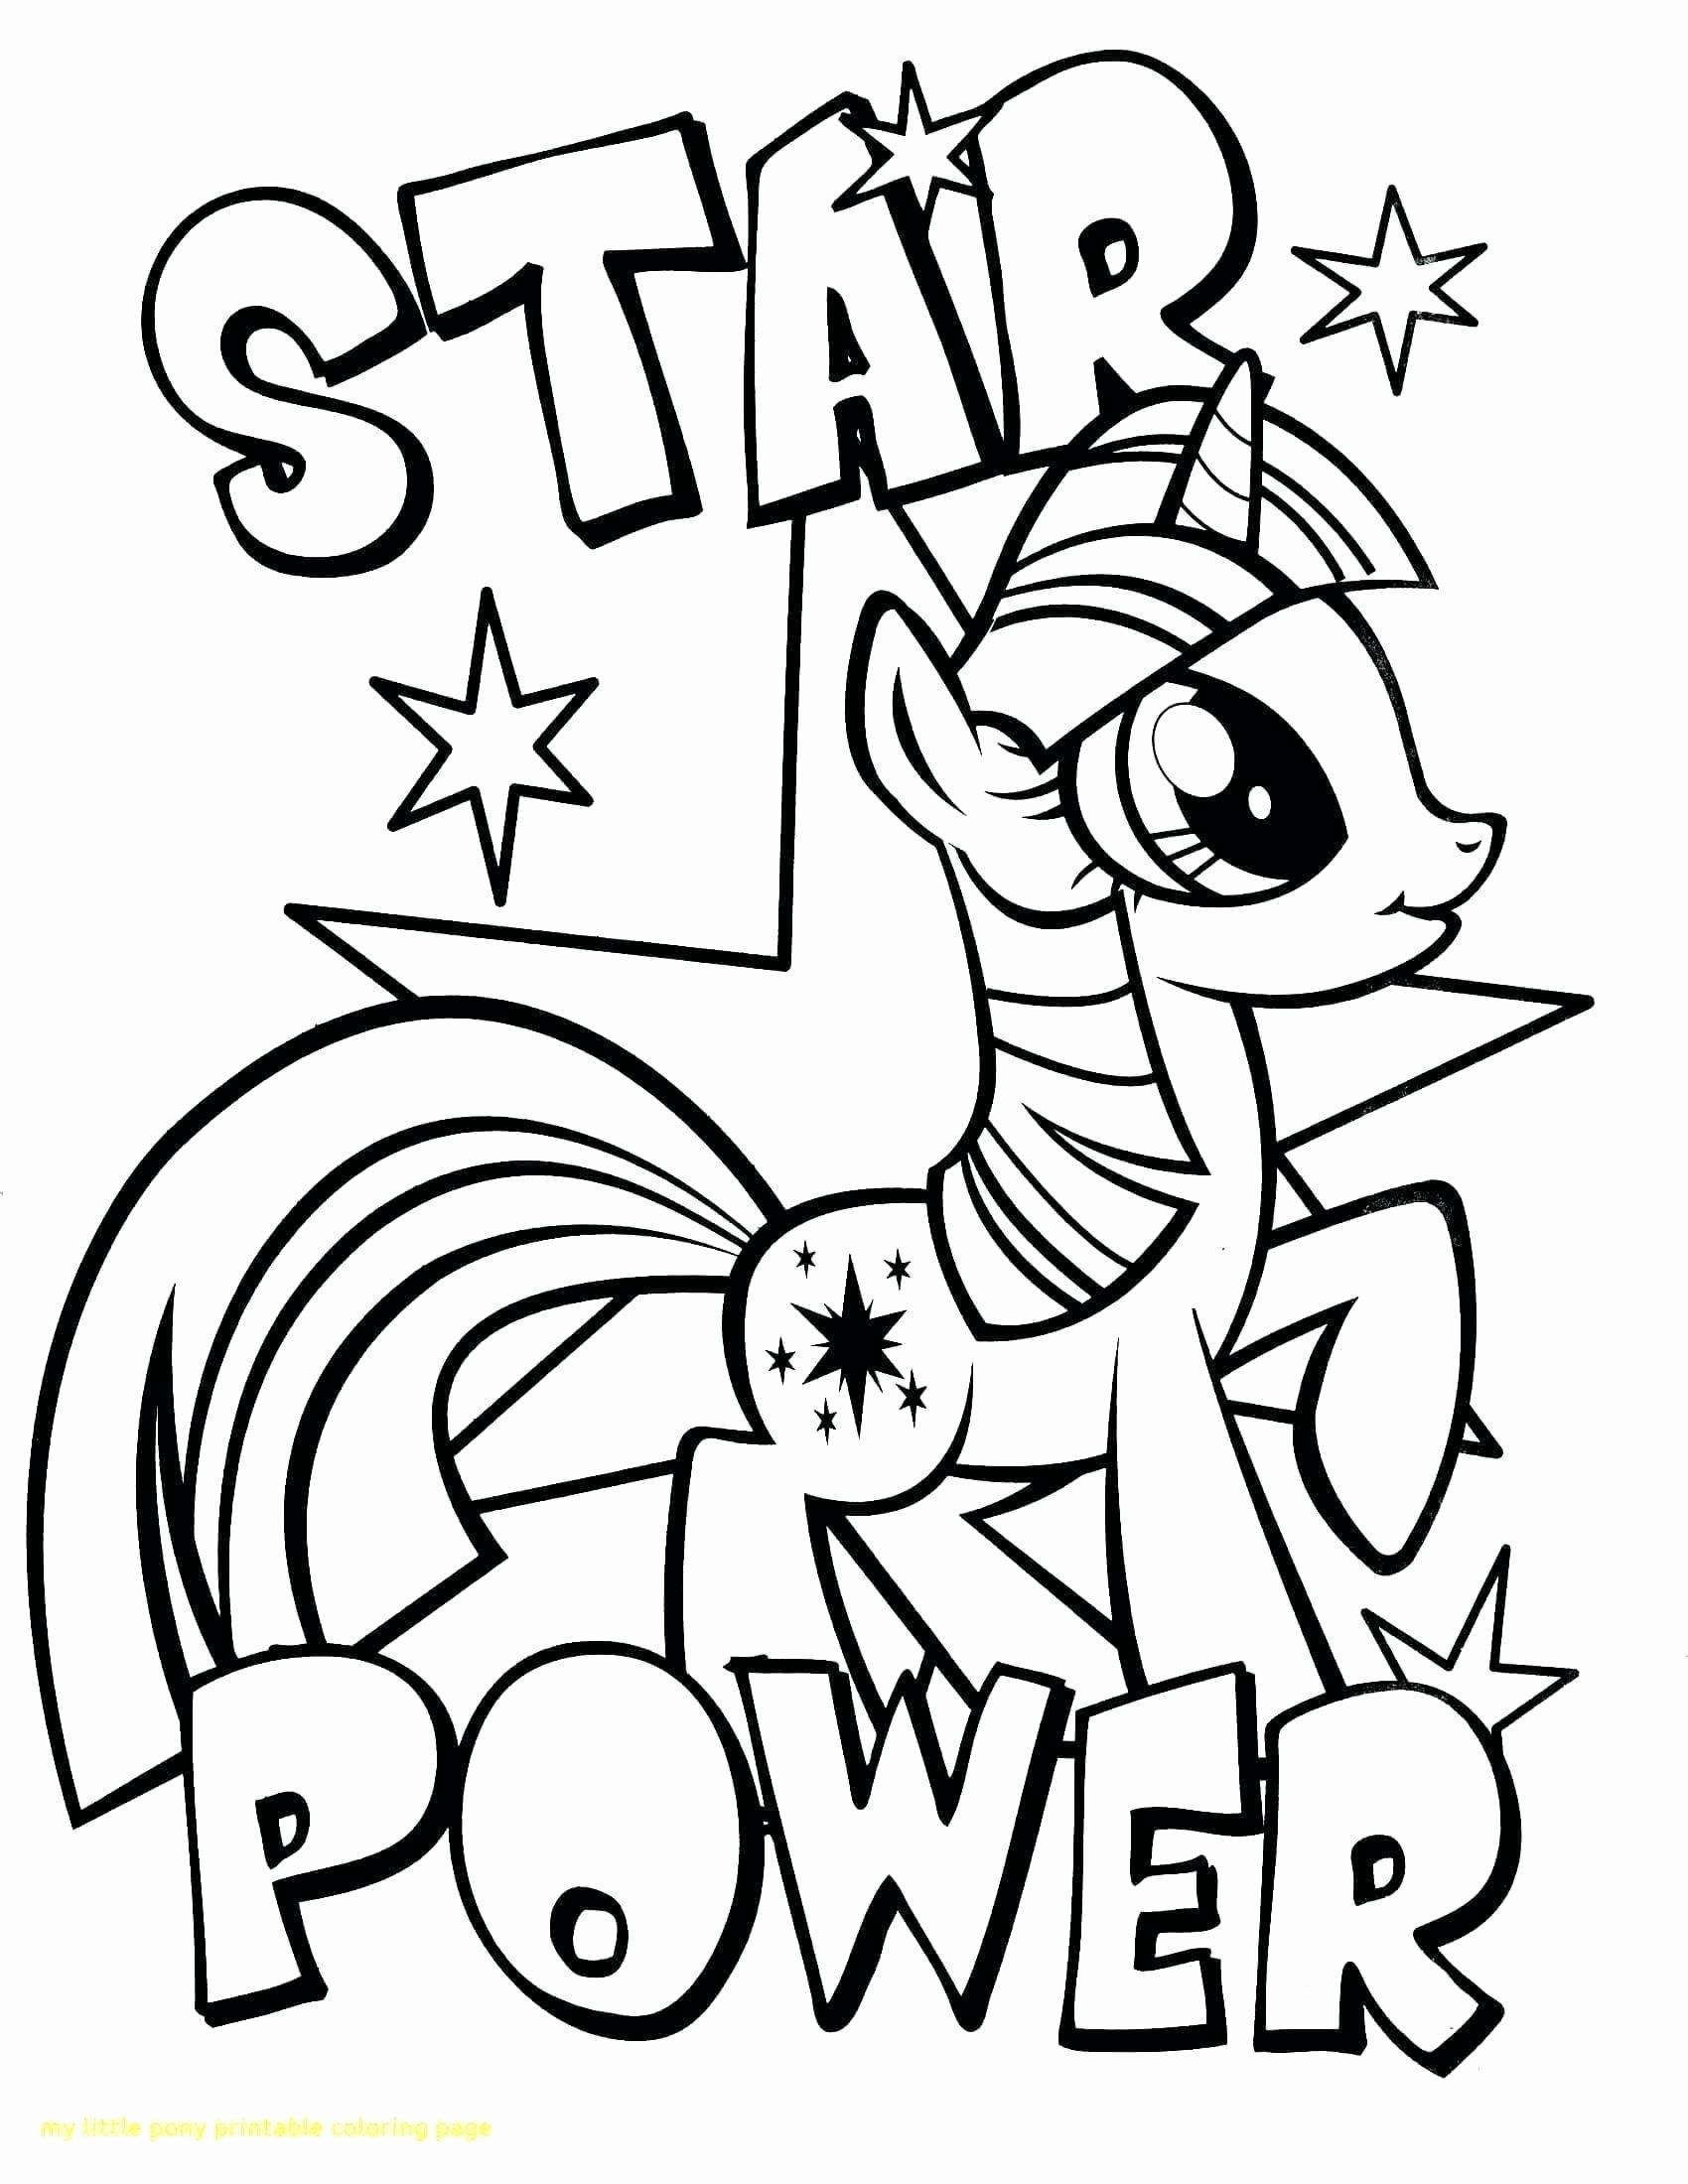 My Little Pony Coloring Book Fresh Coloring Pages Coloring Book My Little Pony Books Gi Unicorn Coloring Pages My Little Pony Coloring My Little Pony Printable